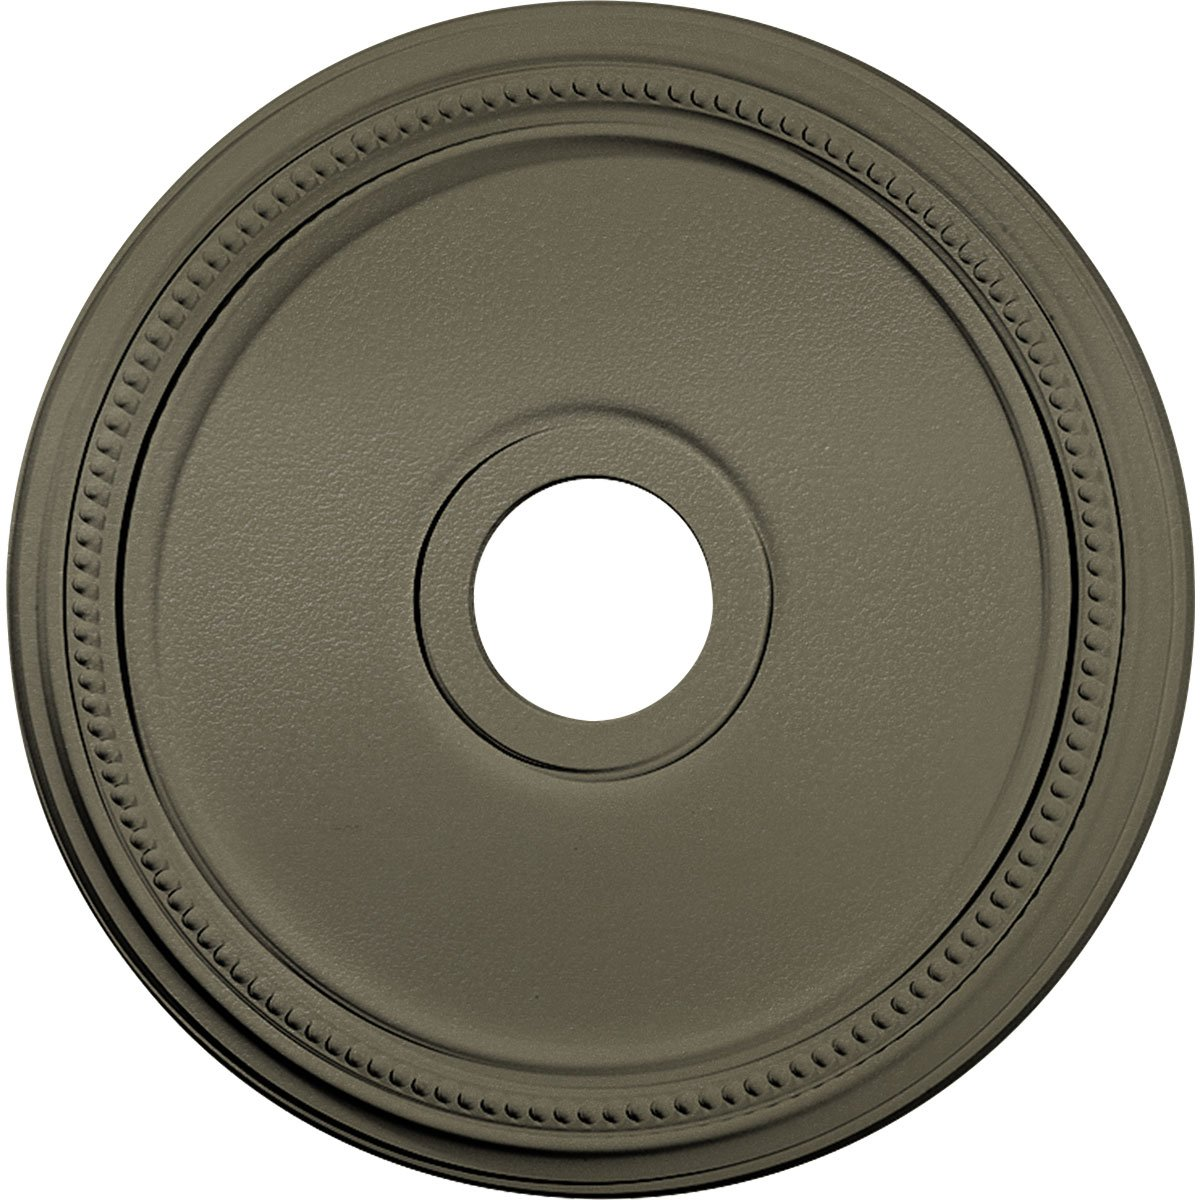 Ekena Millwork CM18DISSF Diane Ceiling Medallion fits Canopies up to 5 3/8'', Spartan Stone